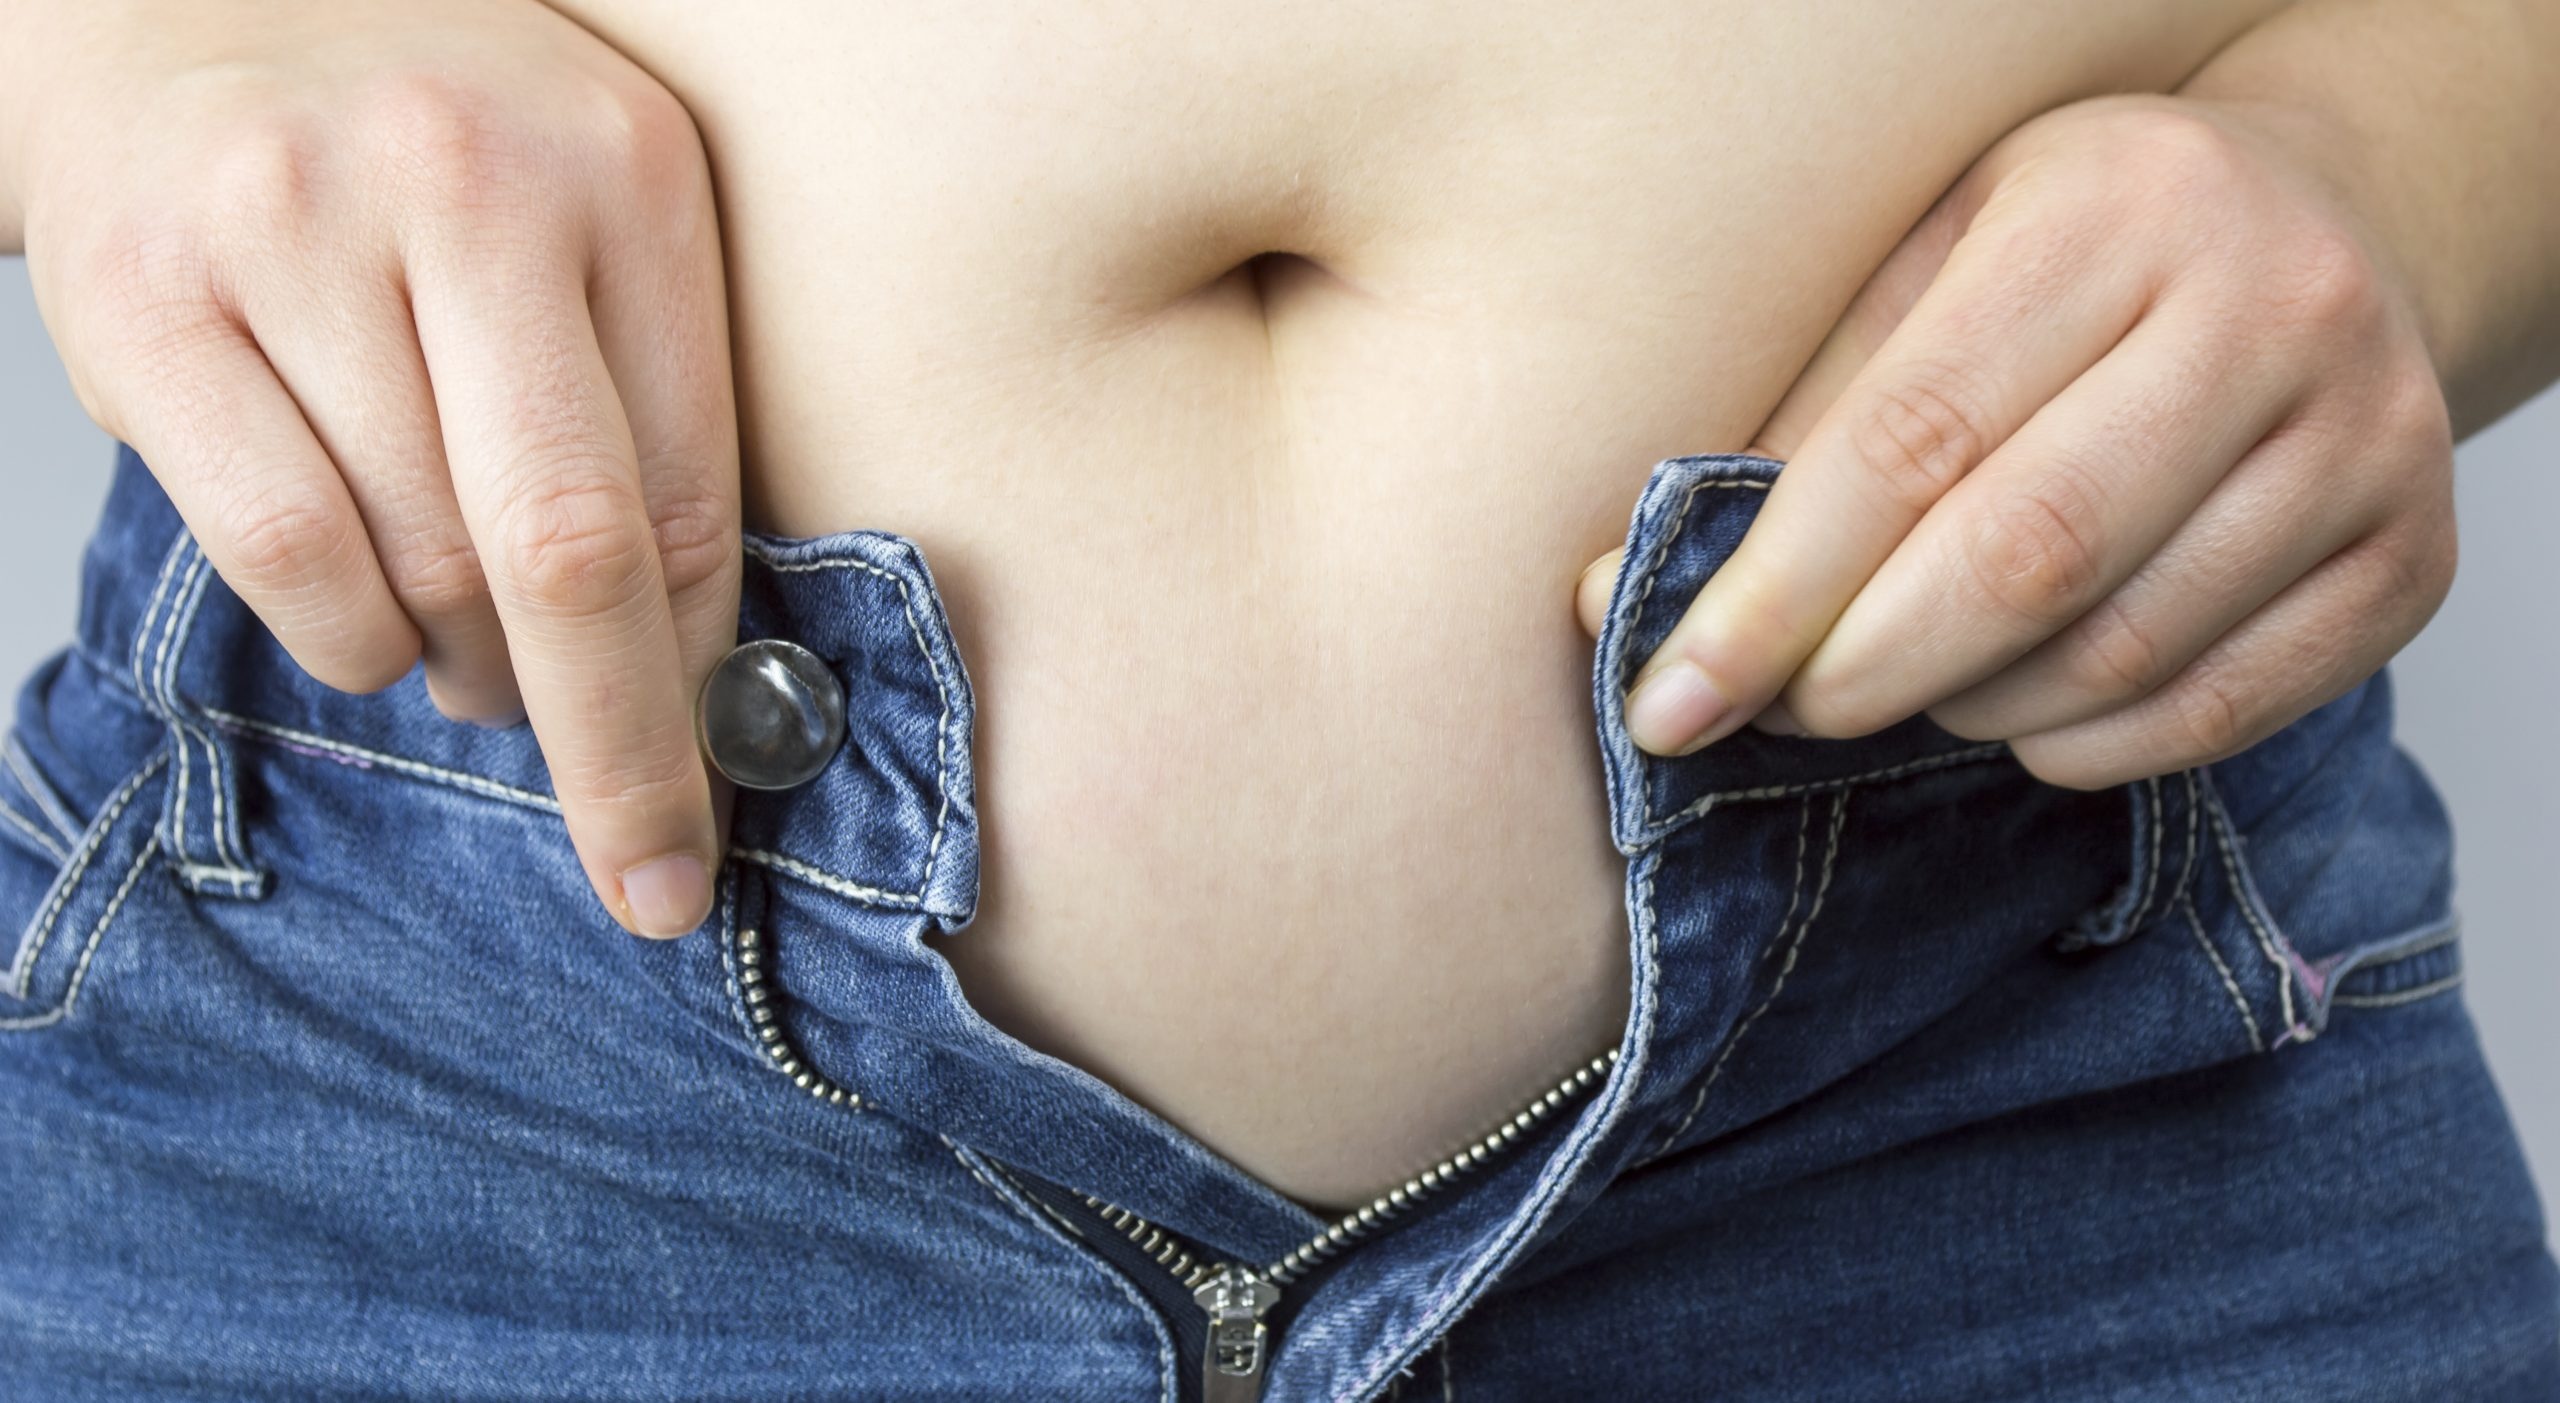 Experts reveal women should be eating 500 fewer calories a day during lockdown